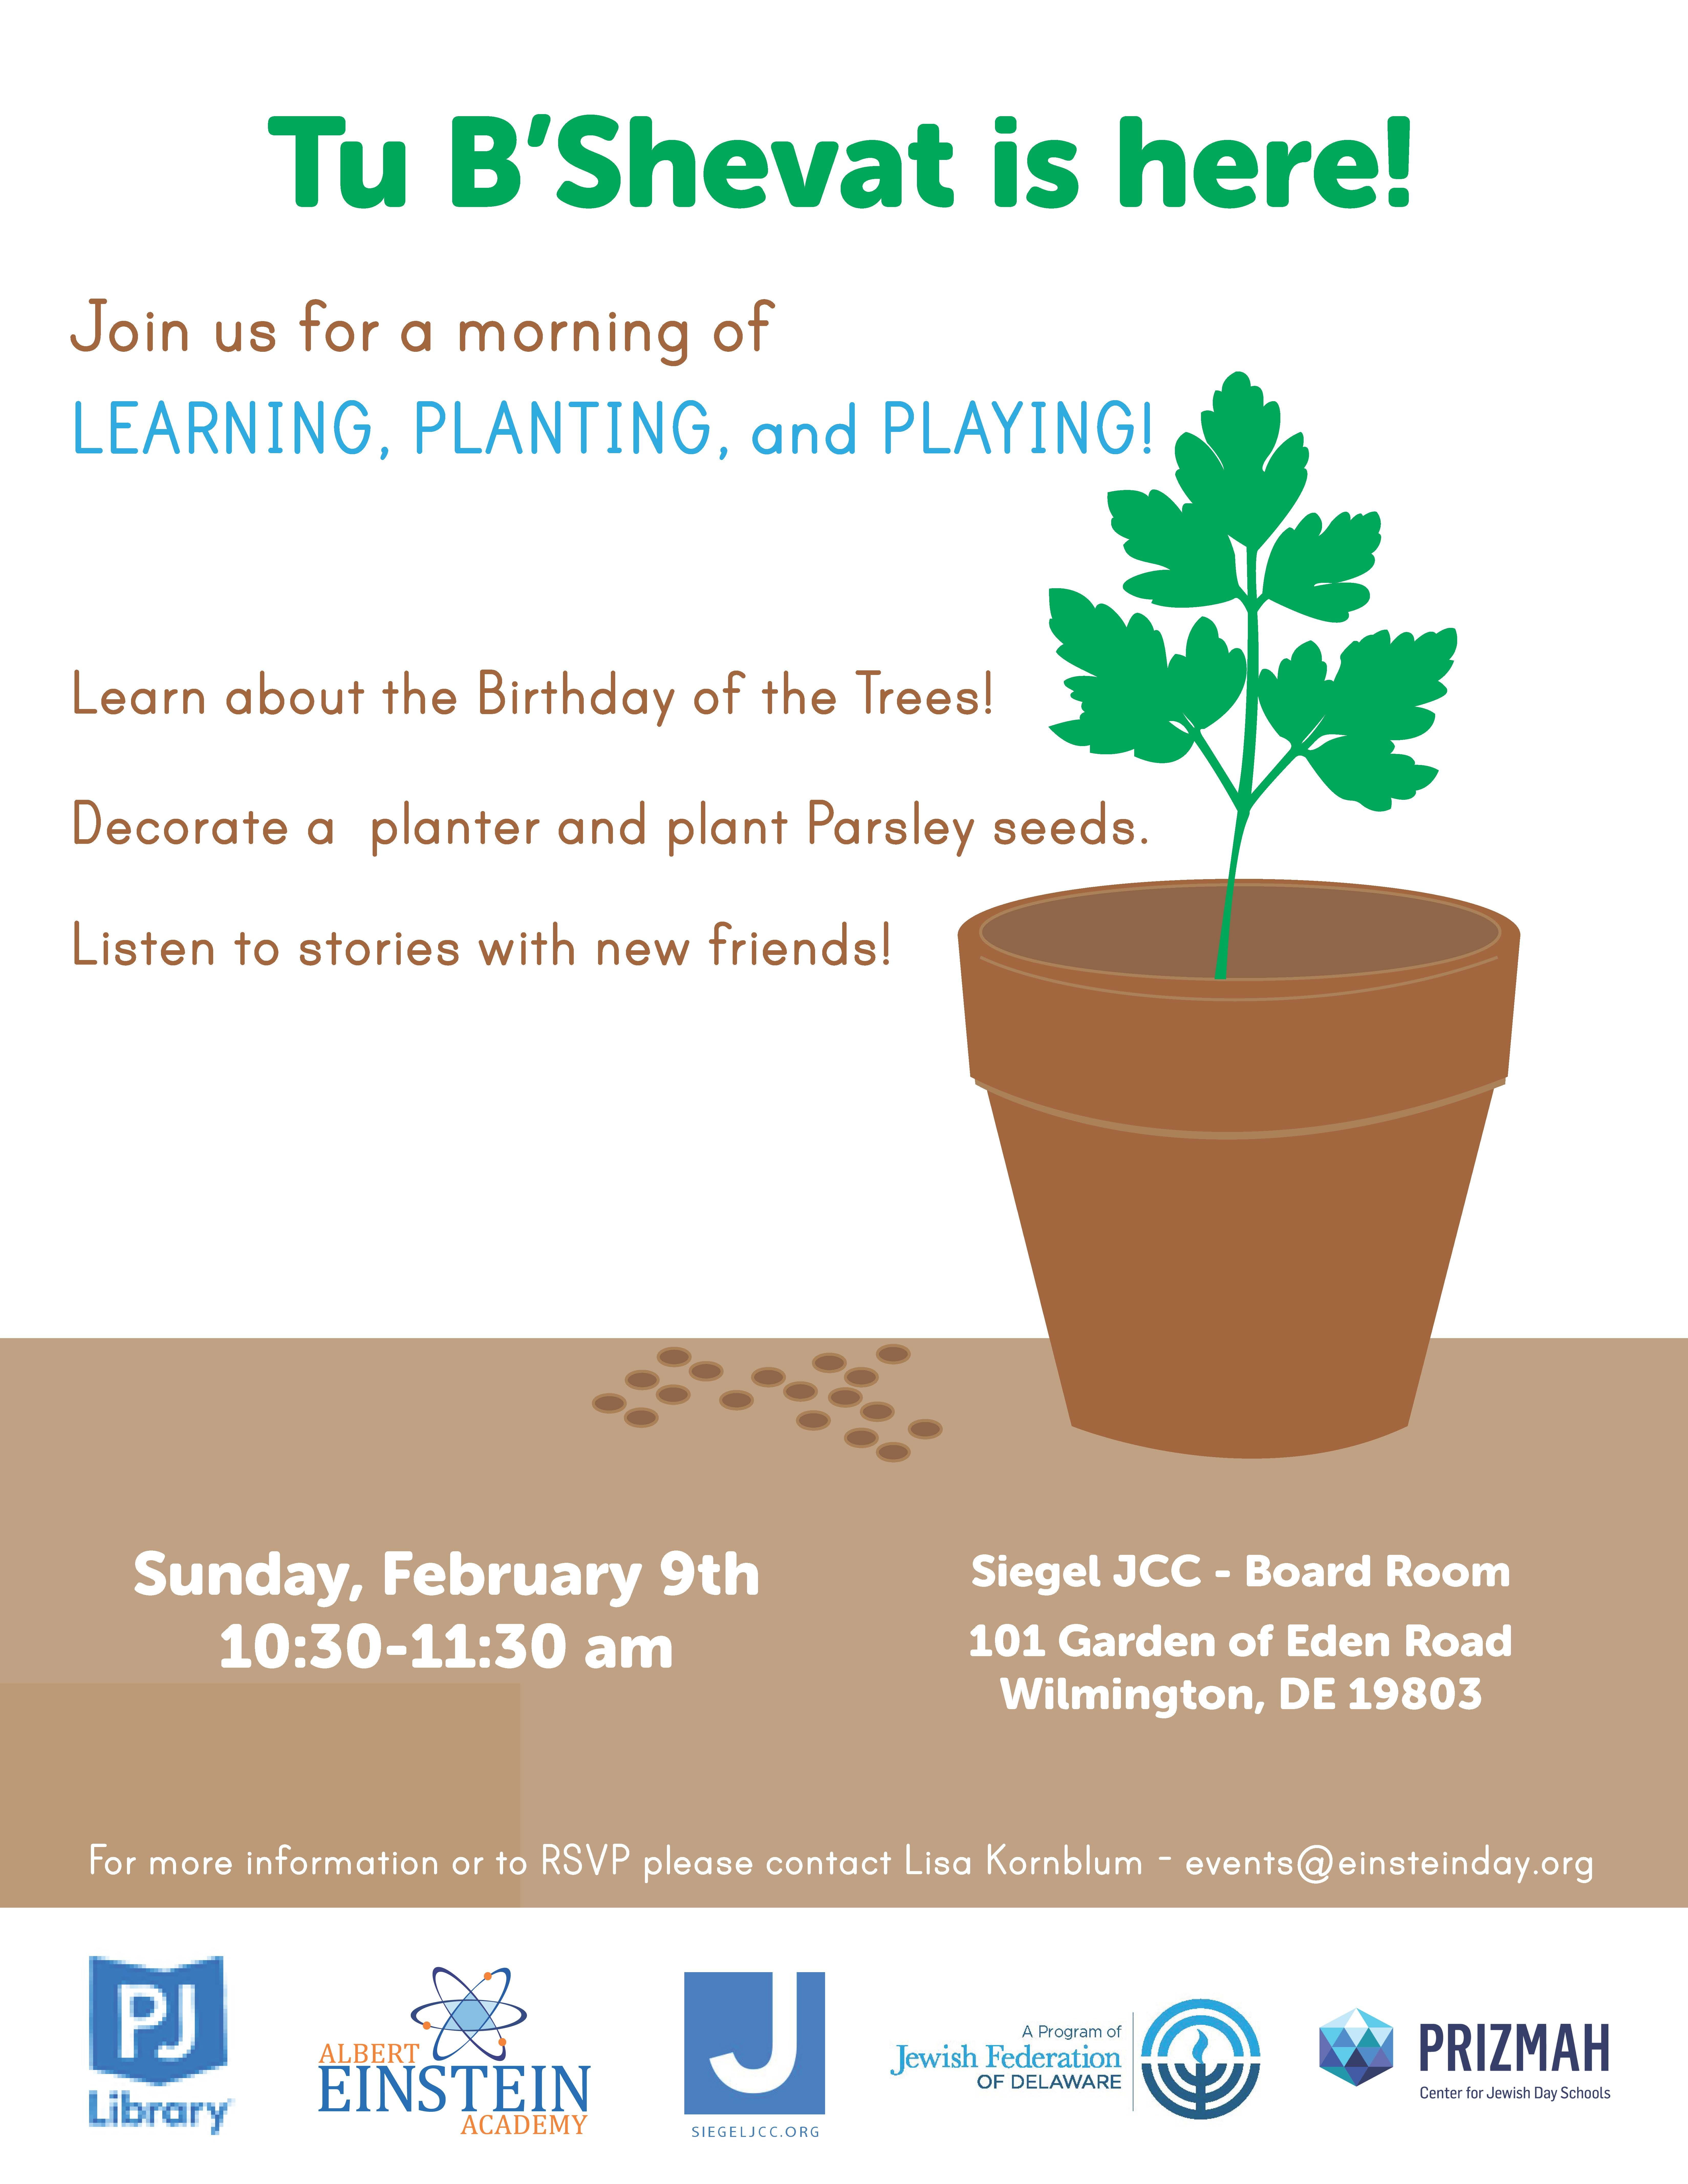 Tu B'Shvat Parsley Planting